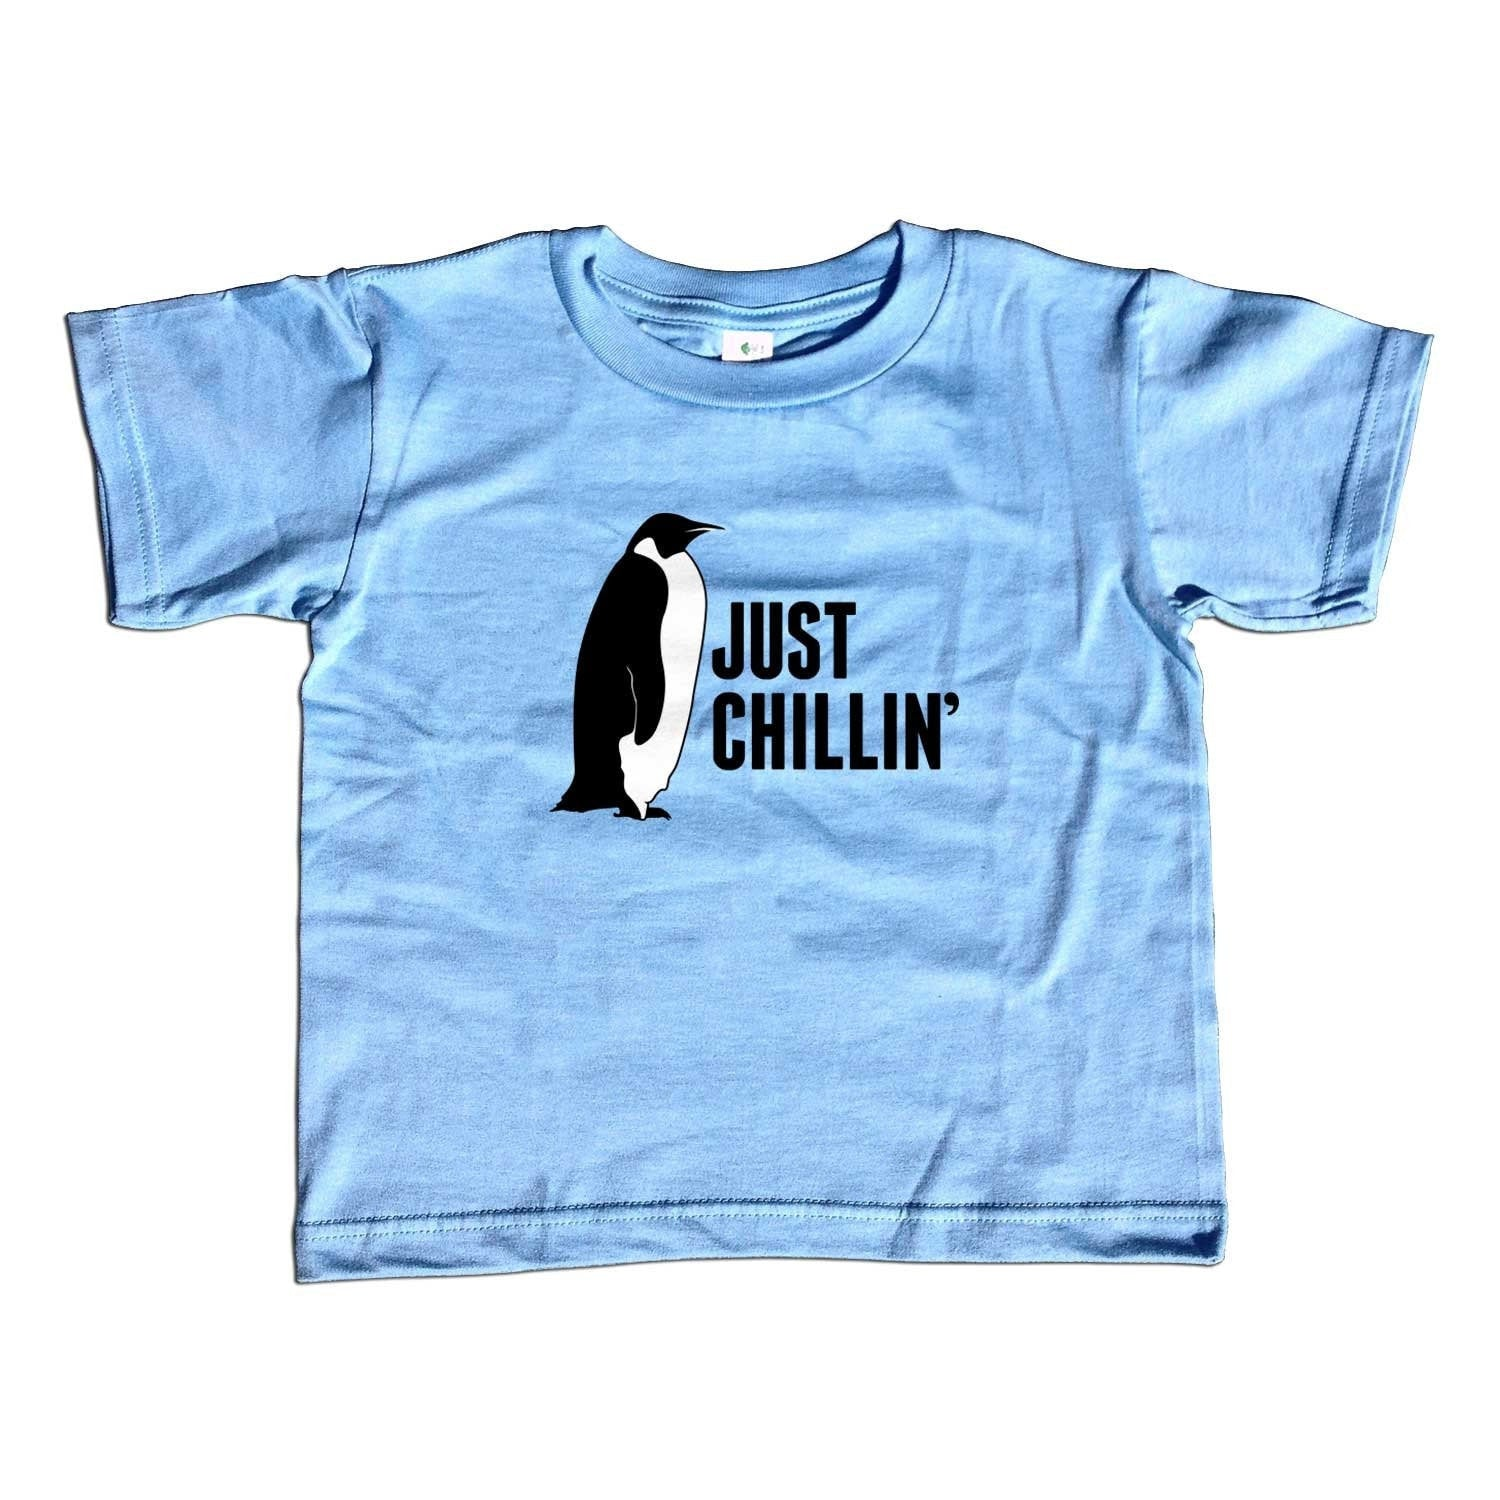 Girl's Just Chillin T-Shirt - Unisex Fit Cool Penguin Shirt